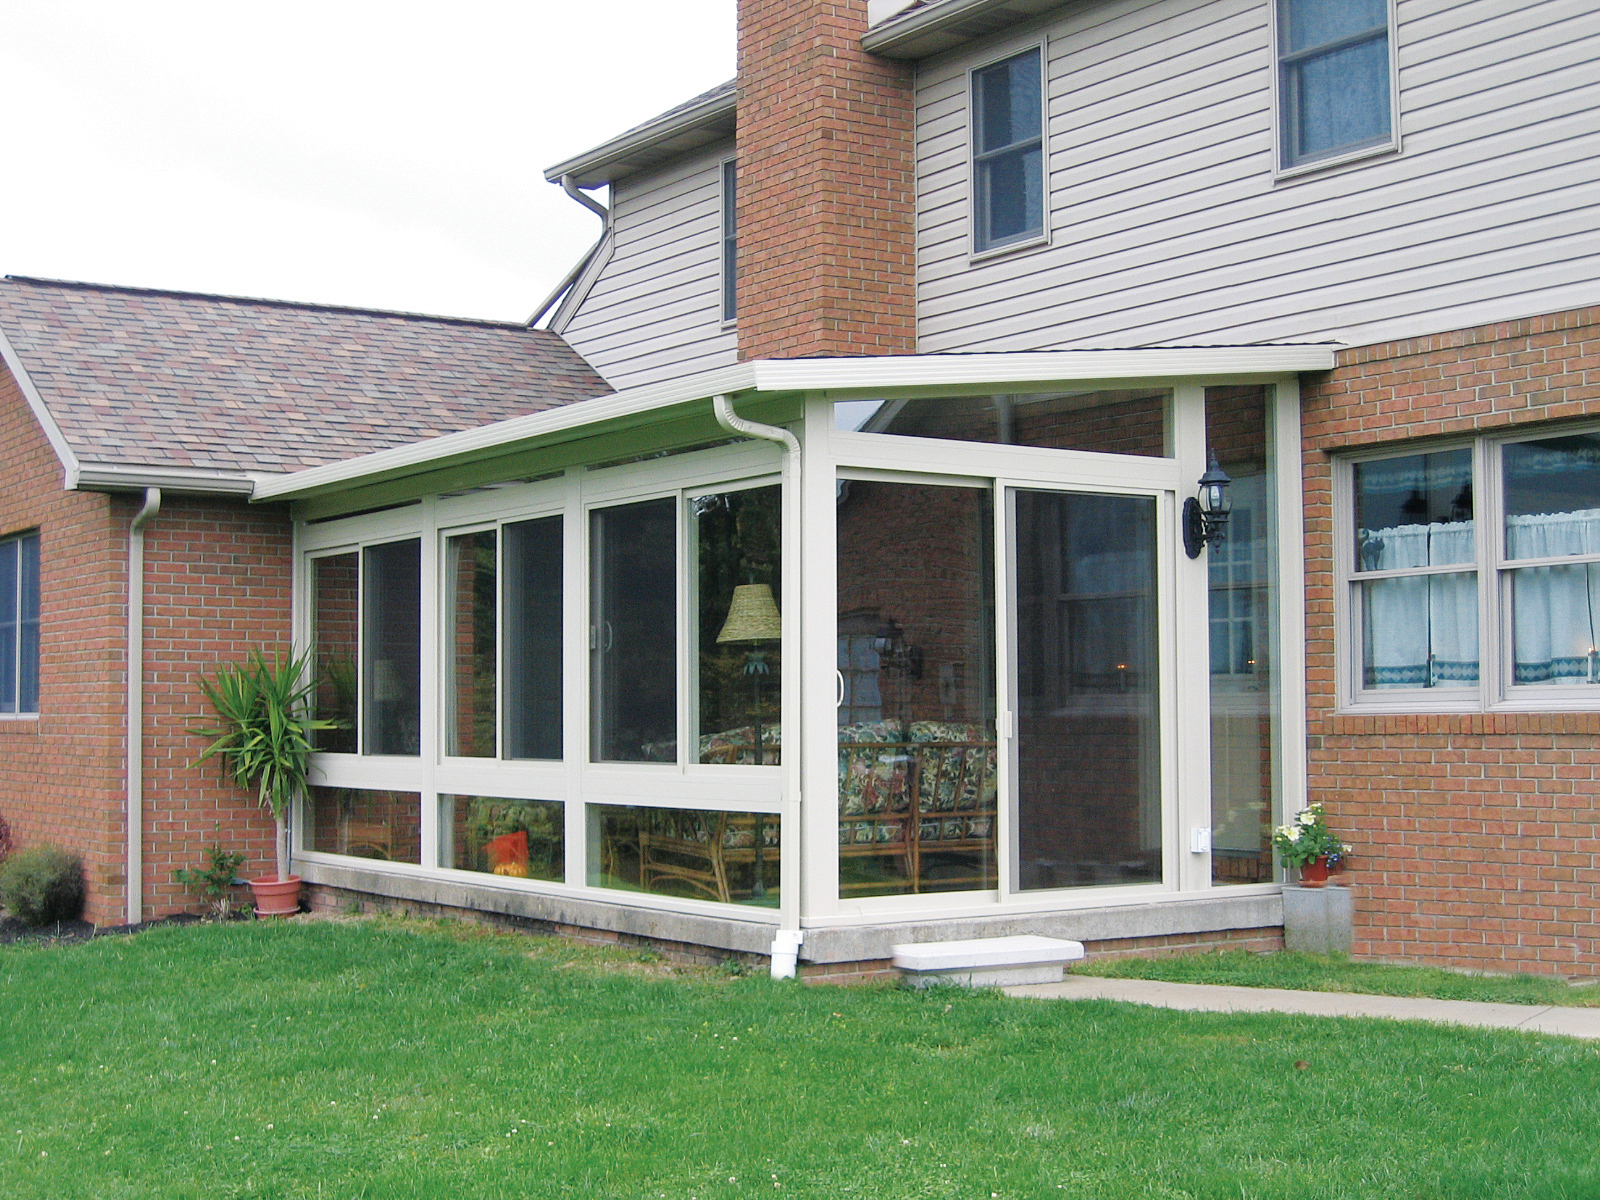 Betterliving fabric shades marketing patio cover recent posts sunrooms - Studio Style Room By Betterliving Patio Sunrooms Of Pittsburgh